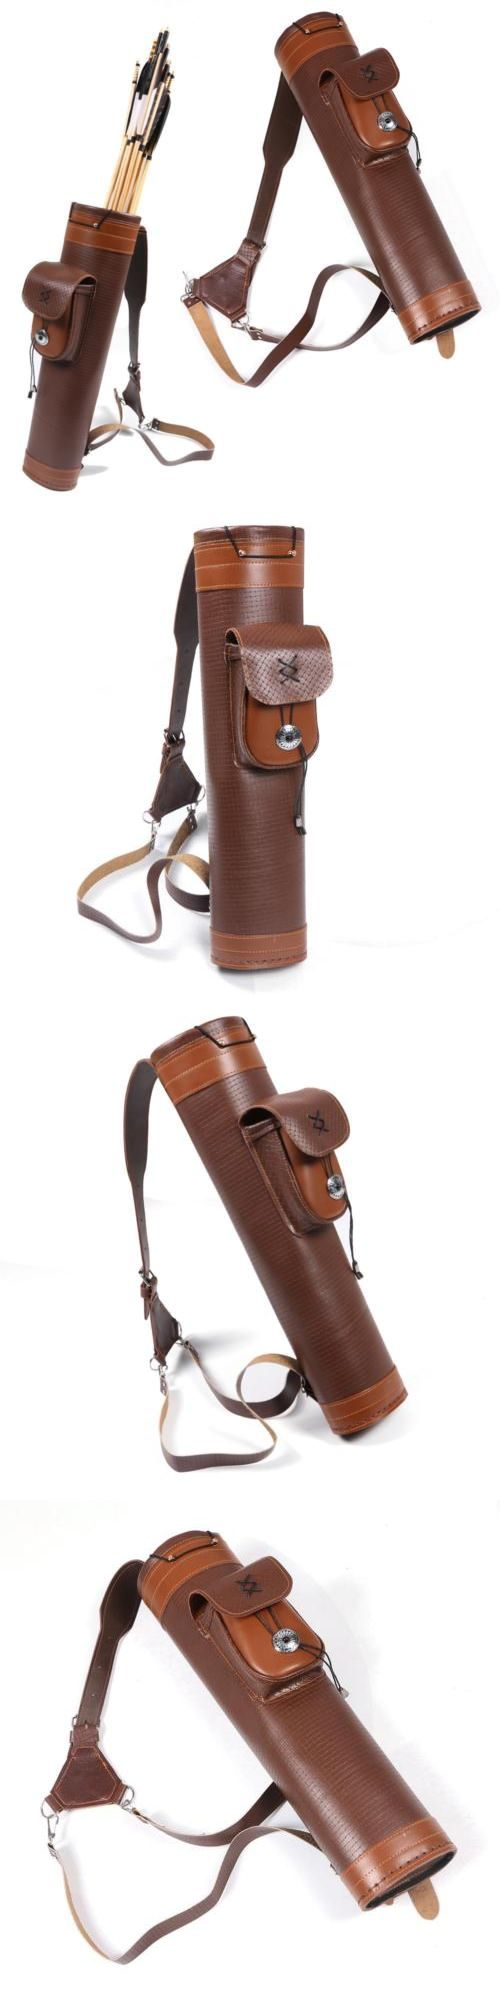 Quivers 20843: Traditional Cow Leather Archery Quiver Holder Straps Bag Fiberglass Carbon Arrow -> BUY IT NOW ONLY: $44.09 on eBay!